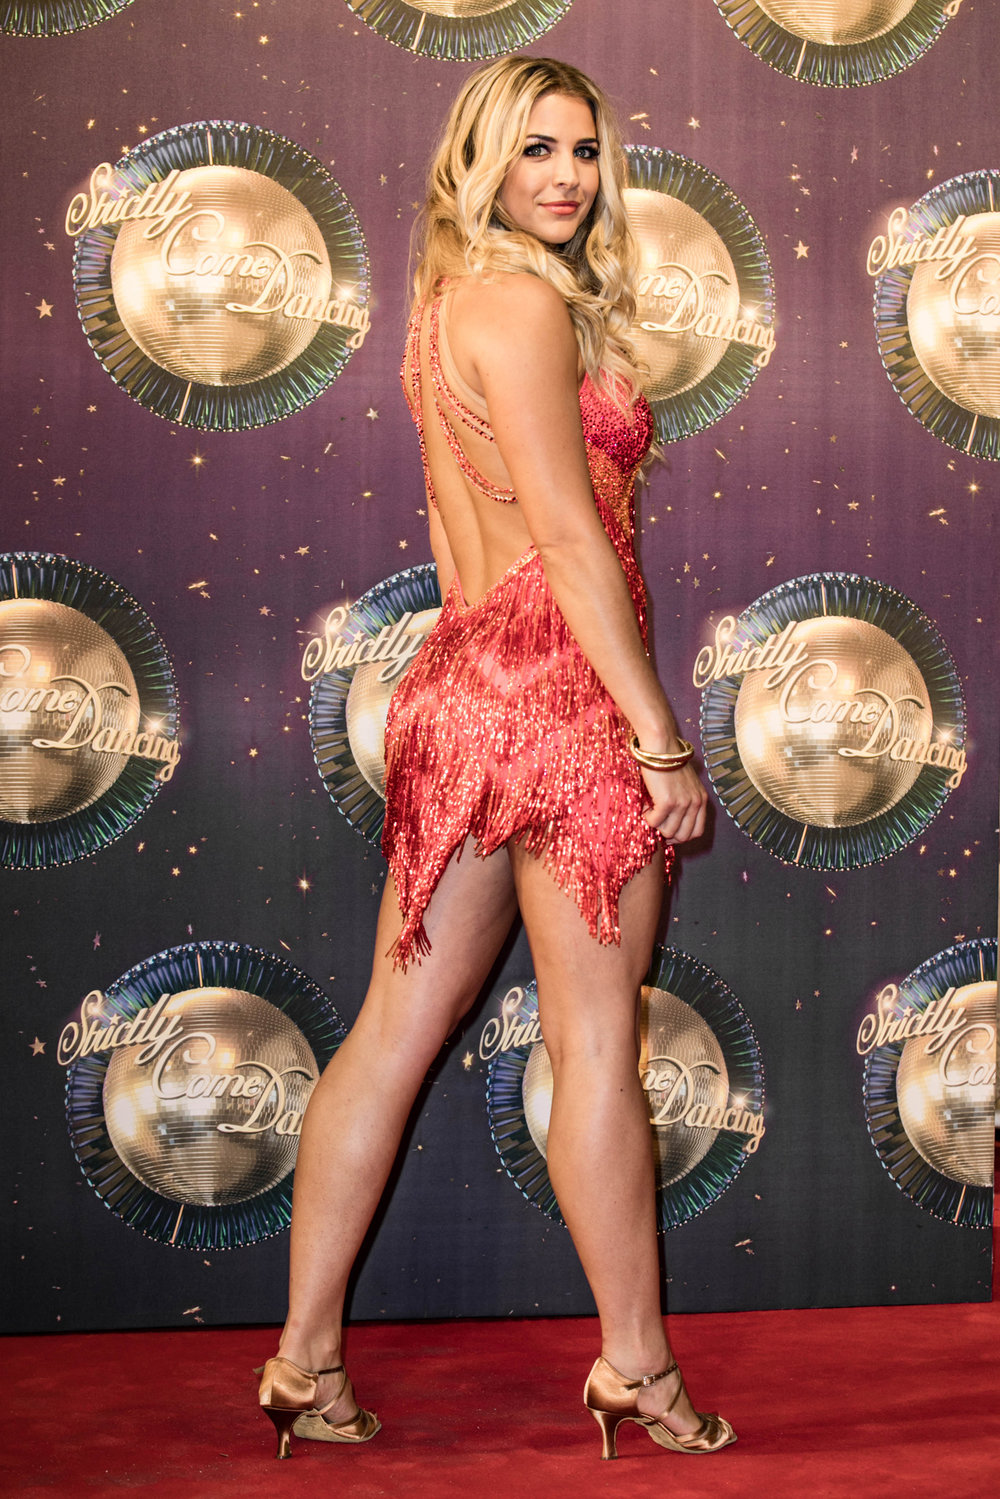 PHT_B5327_strictly_come_dancing_14050.JPG